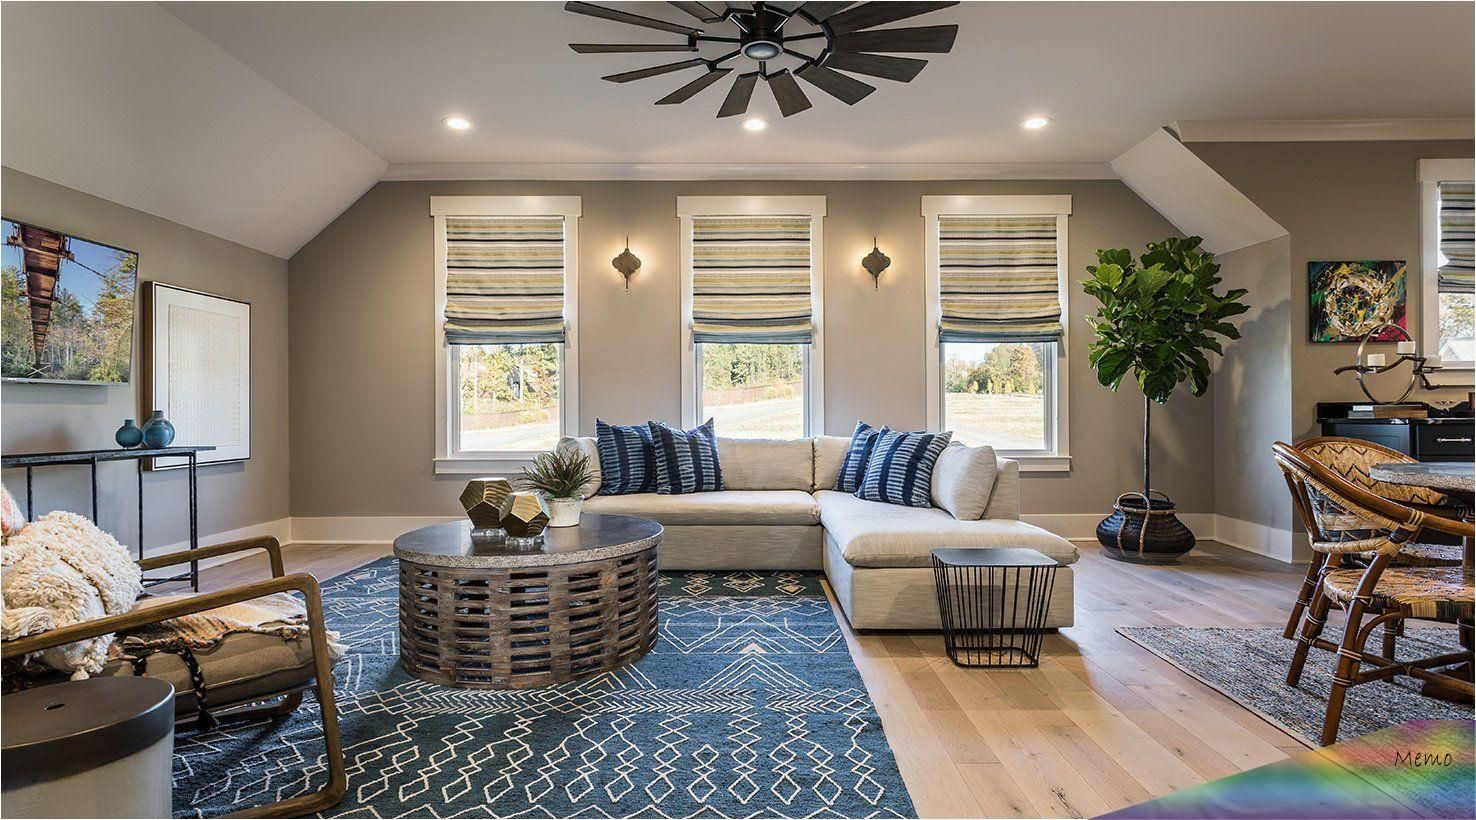 sherwin williams living room paint colors living room on trendy paint colors living room id=93641